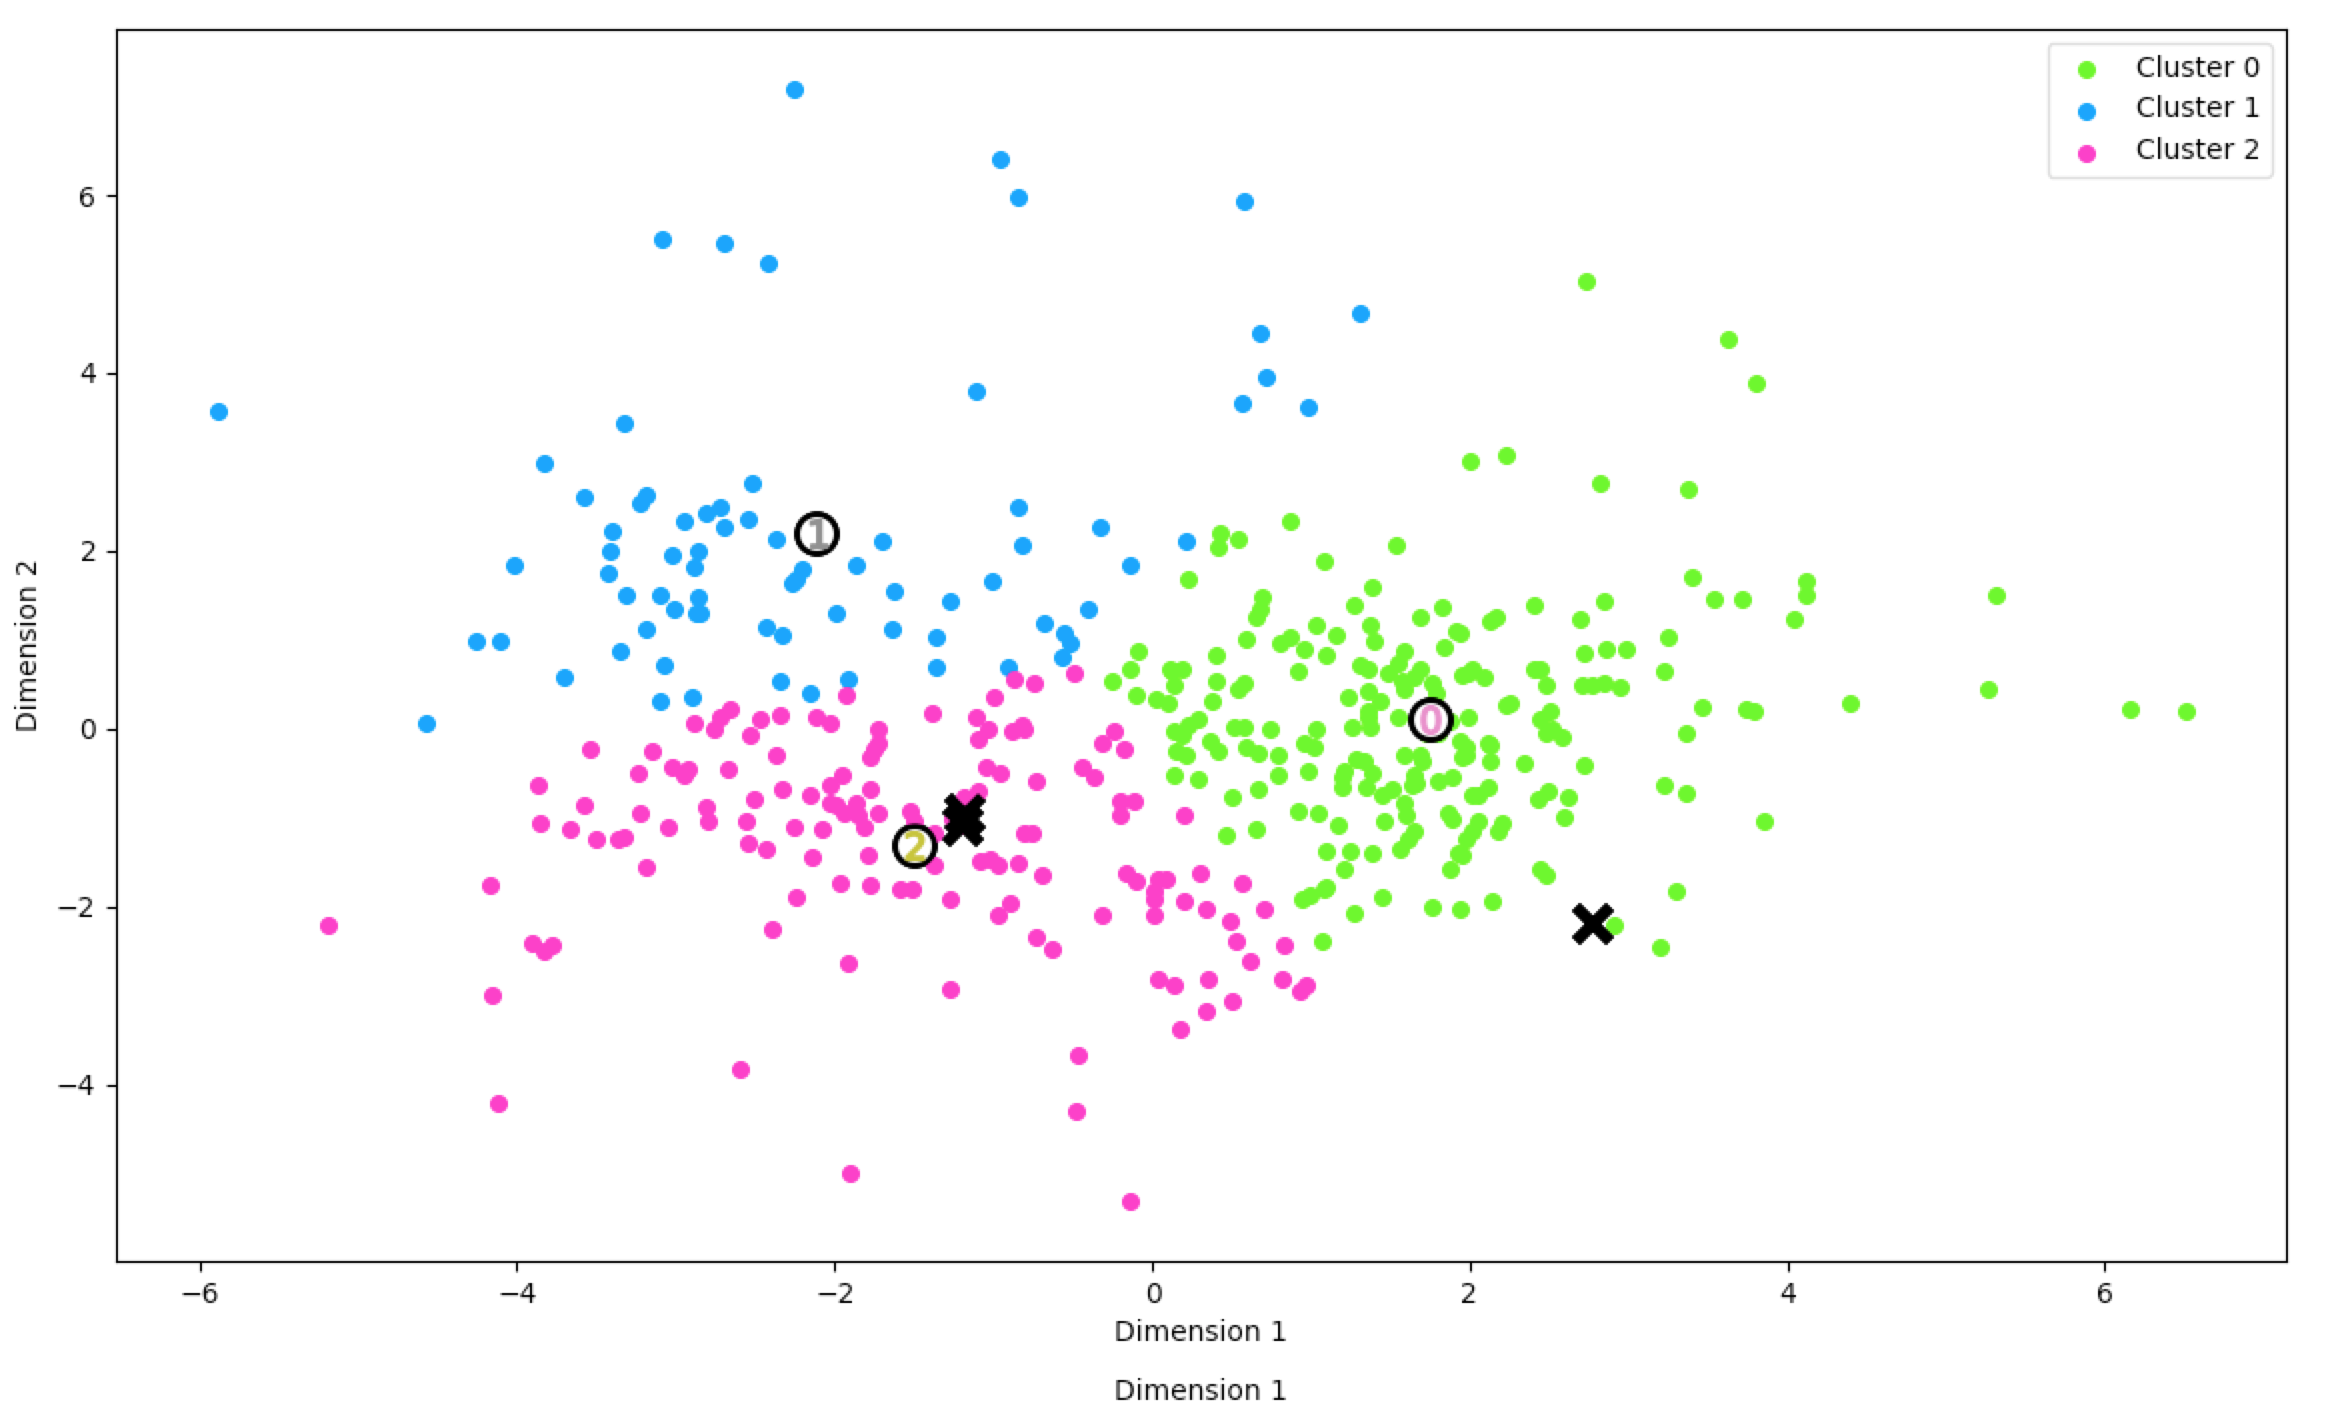 Advanced customer segmentation in order to isolate new segments and spend habits. Analysis over data from 6 different websites for consumer goods showed distinct patterns within the customers no correlated by traditional means. Customers were put into 3 bins depending on the cluster, and marketed to with different strategies resulting in increased spend for 2/3 groups.